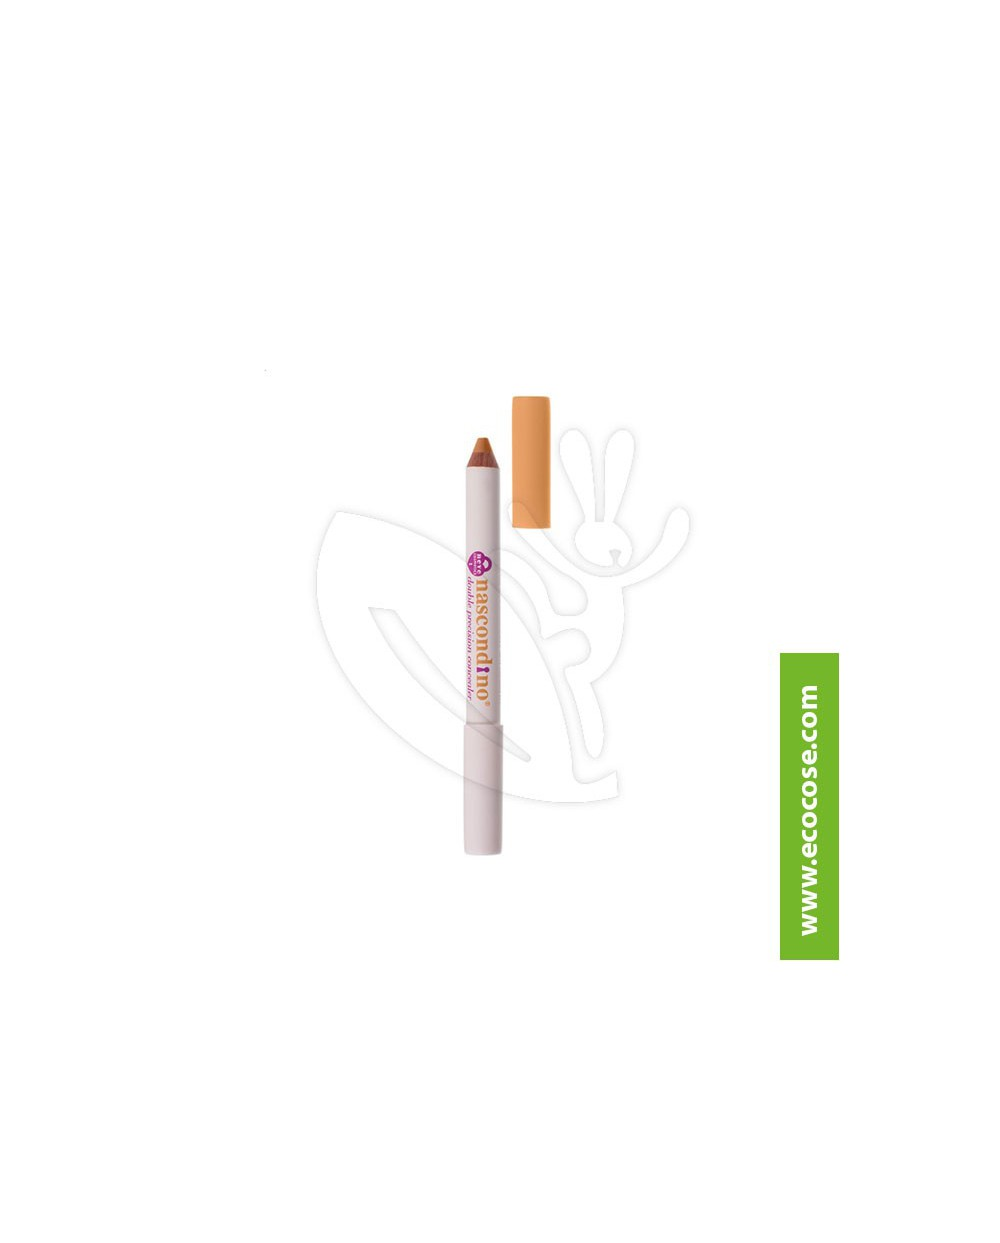 Neve Cosmetics - Nascondino Double Precision concealer - Tan